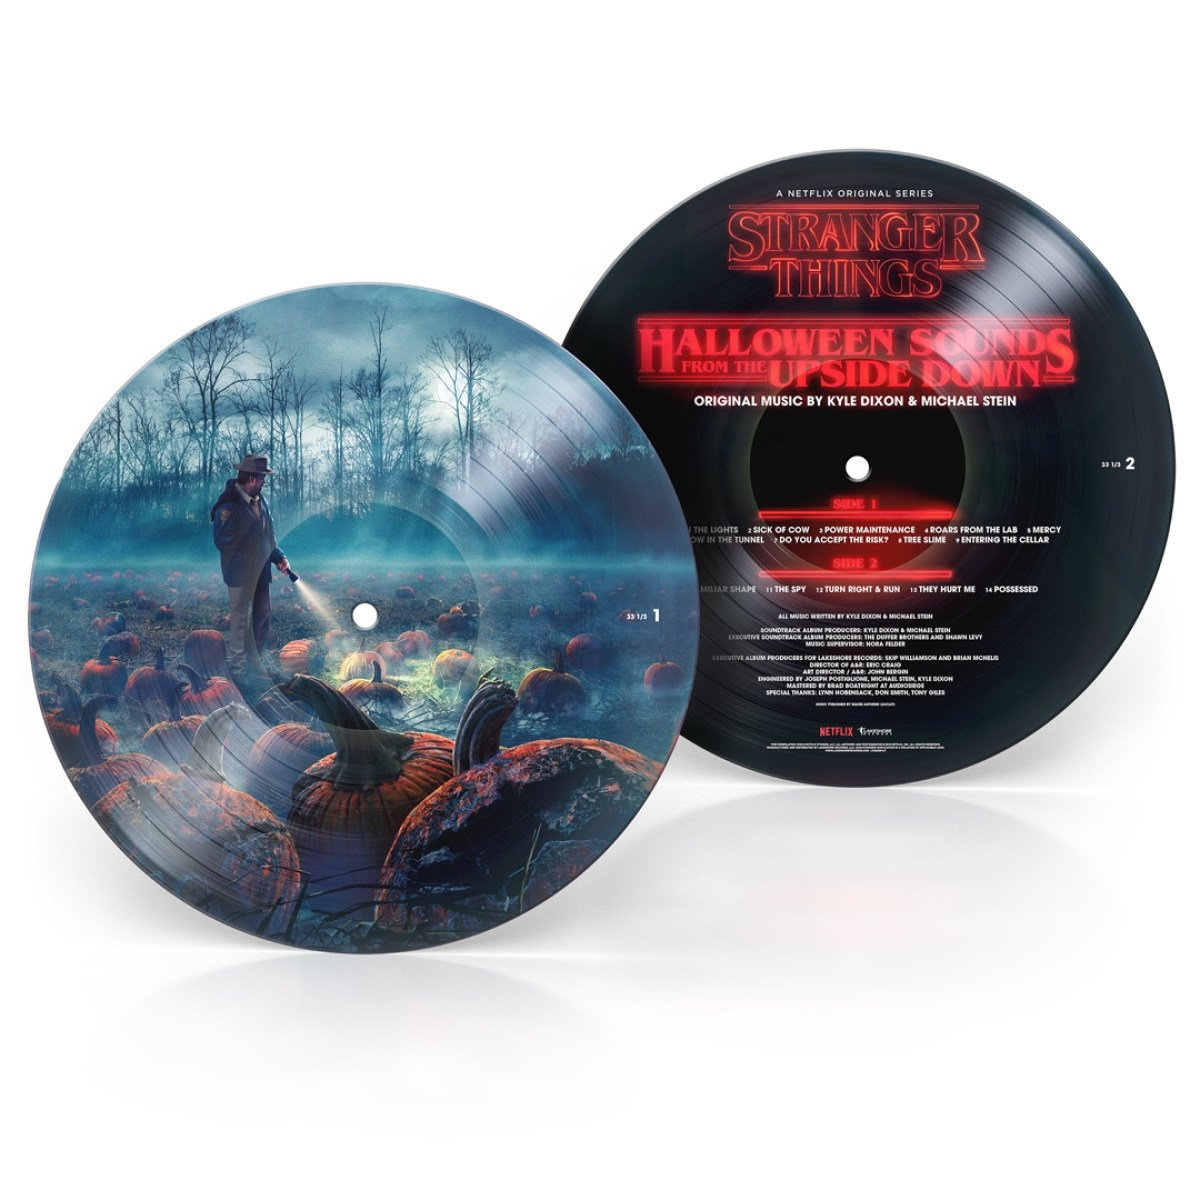 Stranger Things Halloween Sounds Fr (LP) kopen